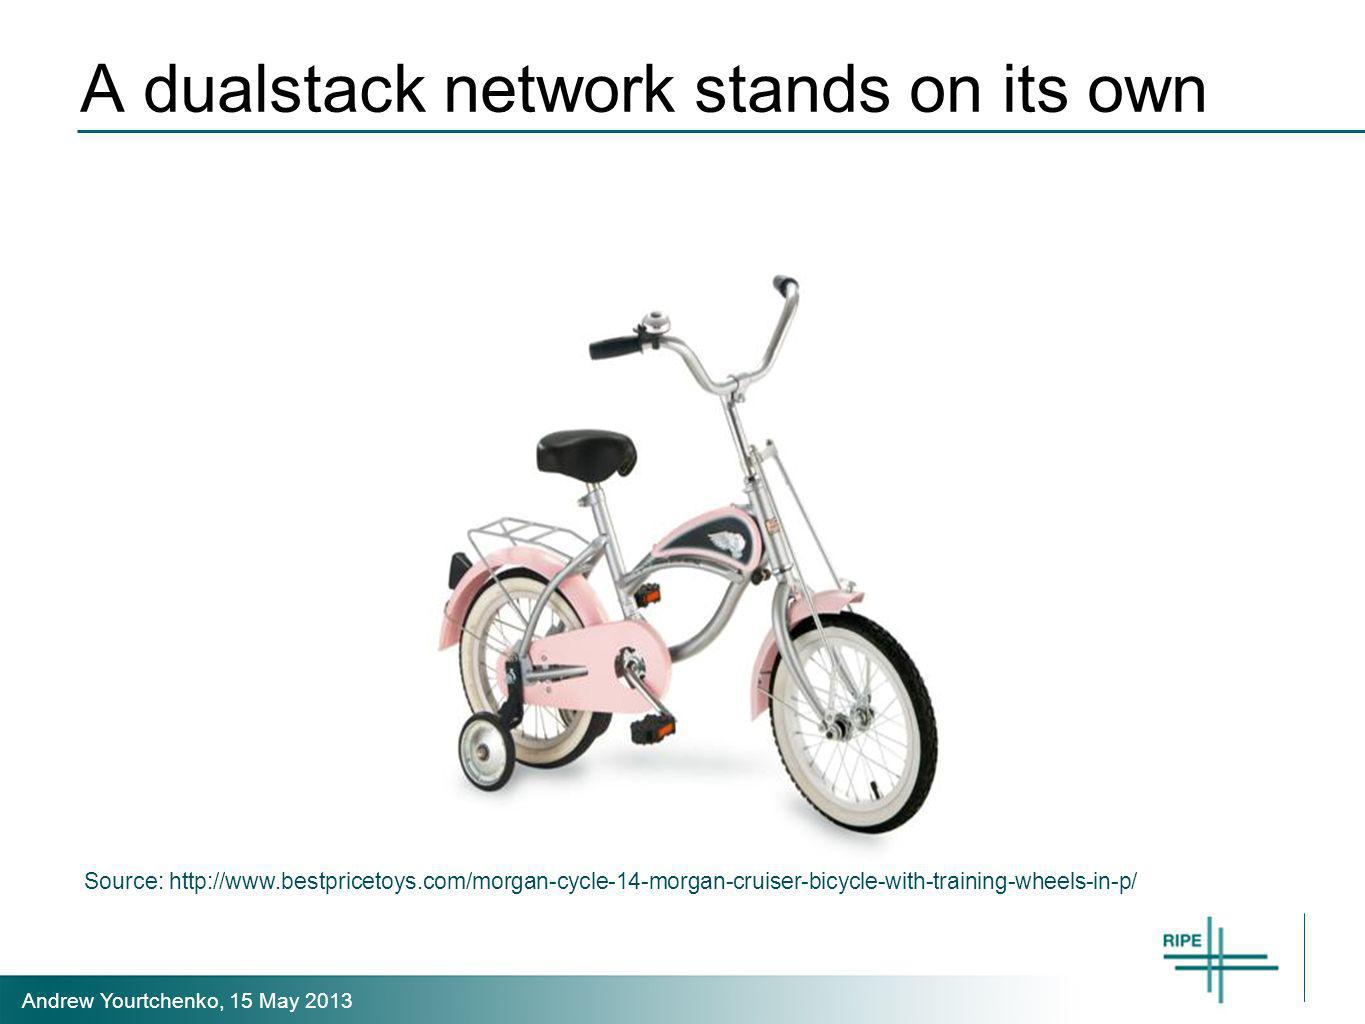 Andrew Yourtchenko, 15 May 2013 A dualstack network stands on its own Source: http://www.bestpricetoys.com/morgan-cycle-14-morgan-cruiser-bicycle-with-training-wheels-in-p/